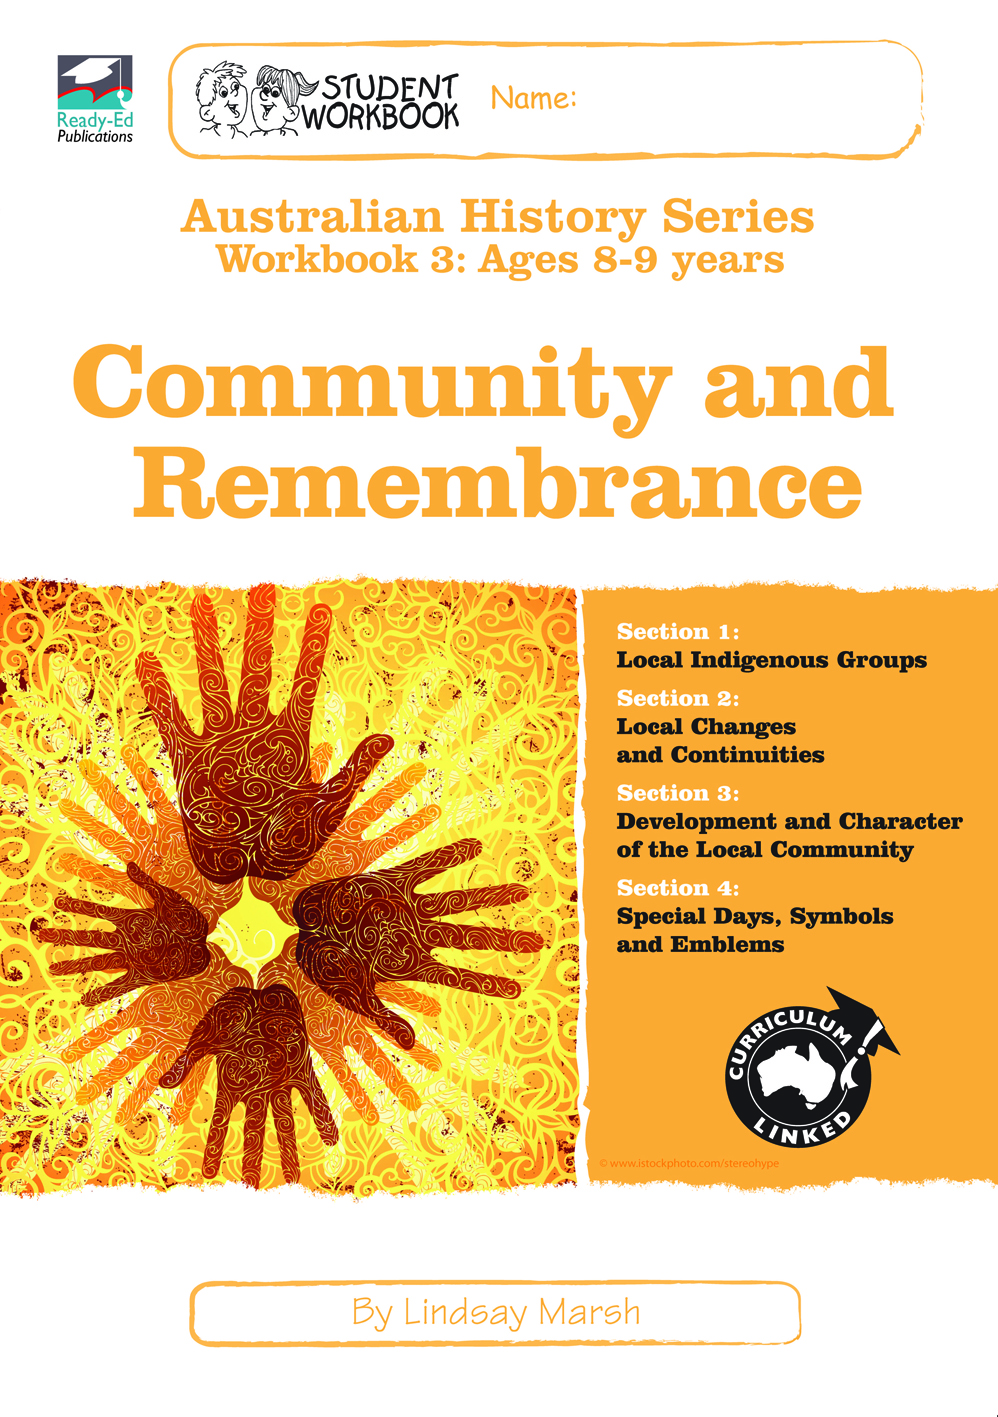 AHS WorkBook 3 Community and Remembrance